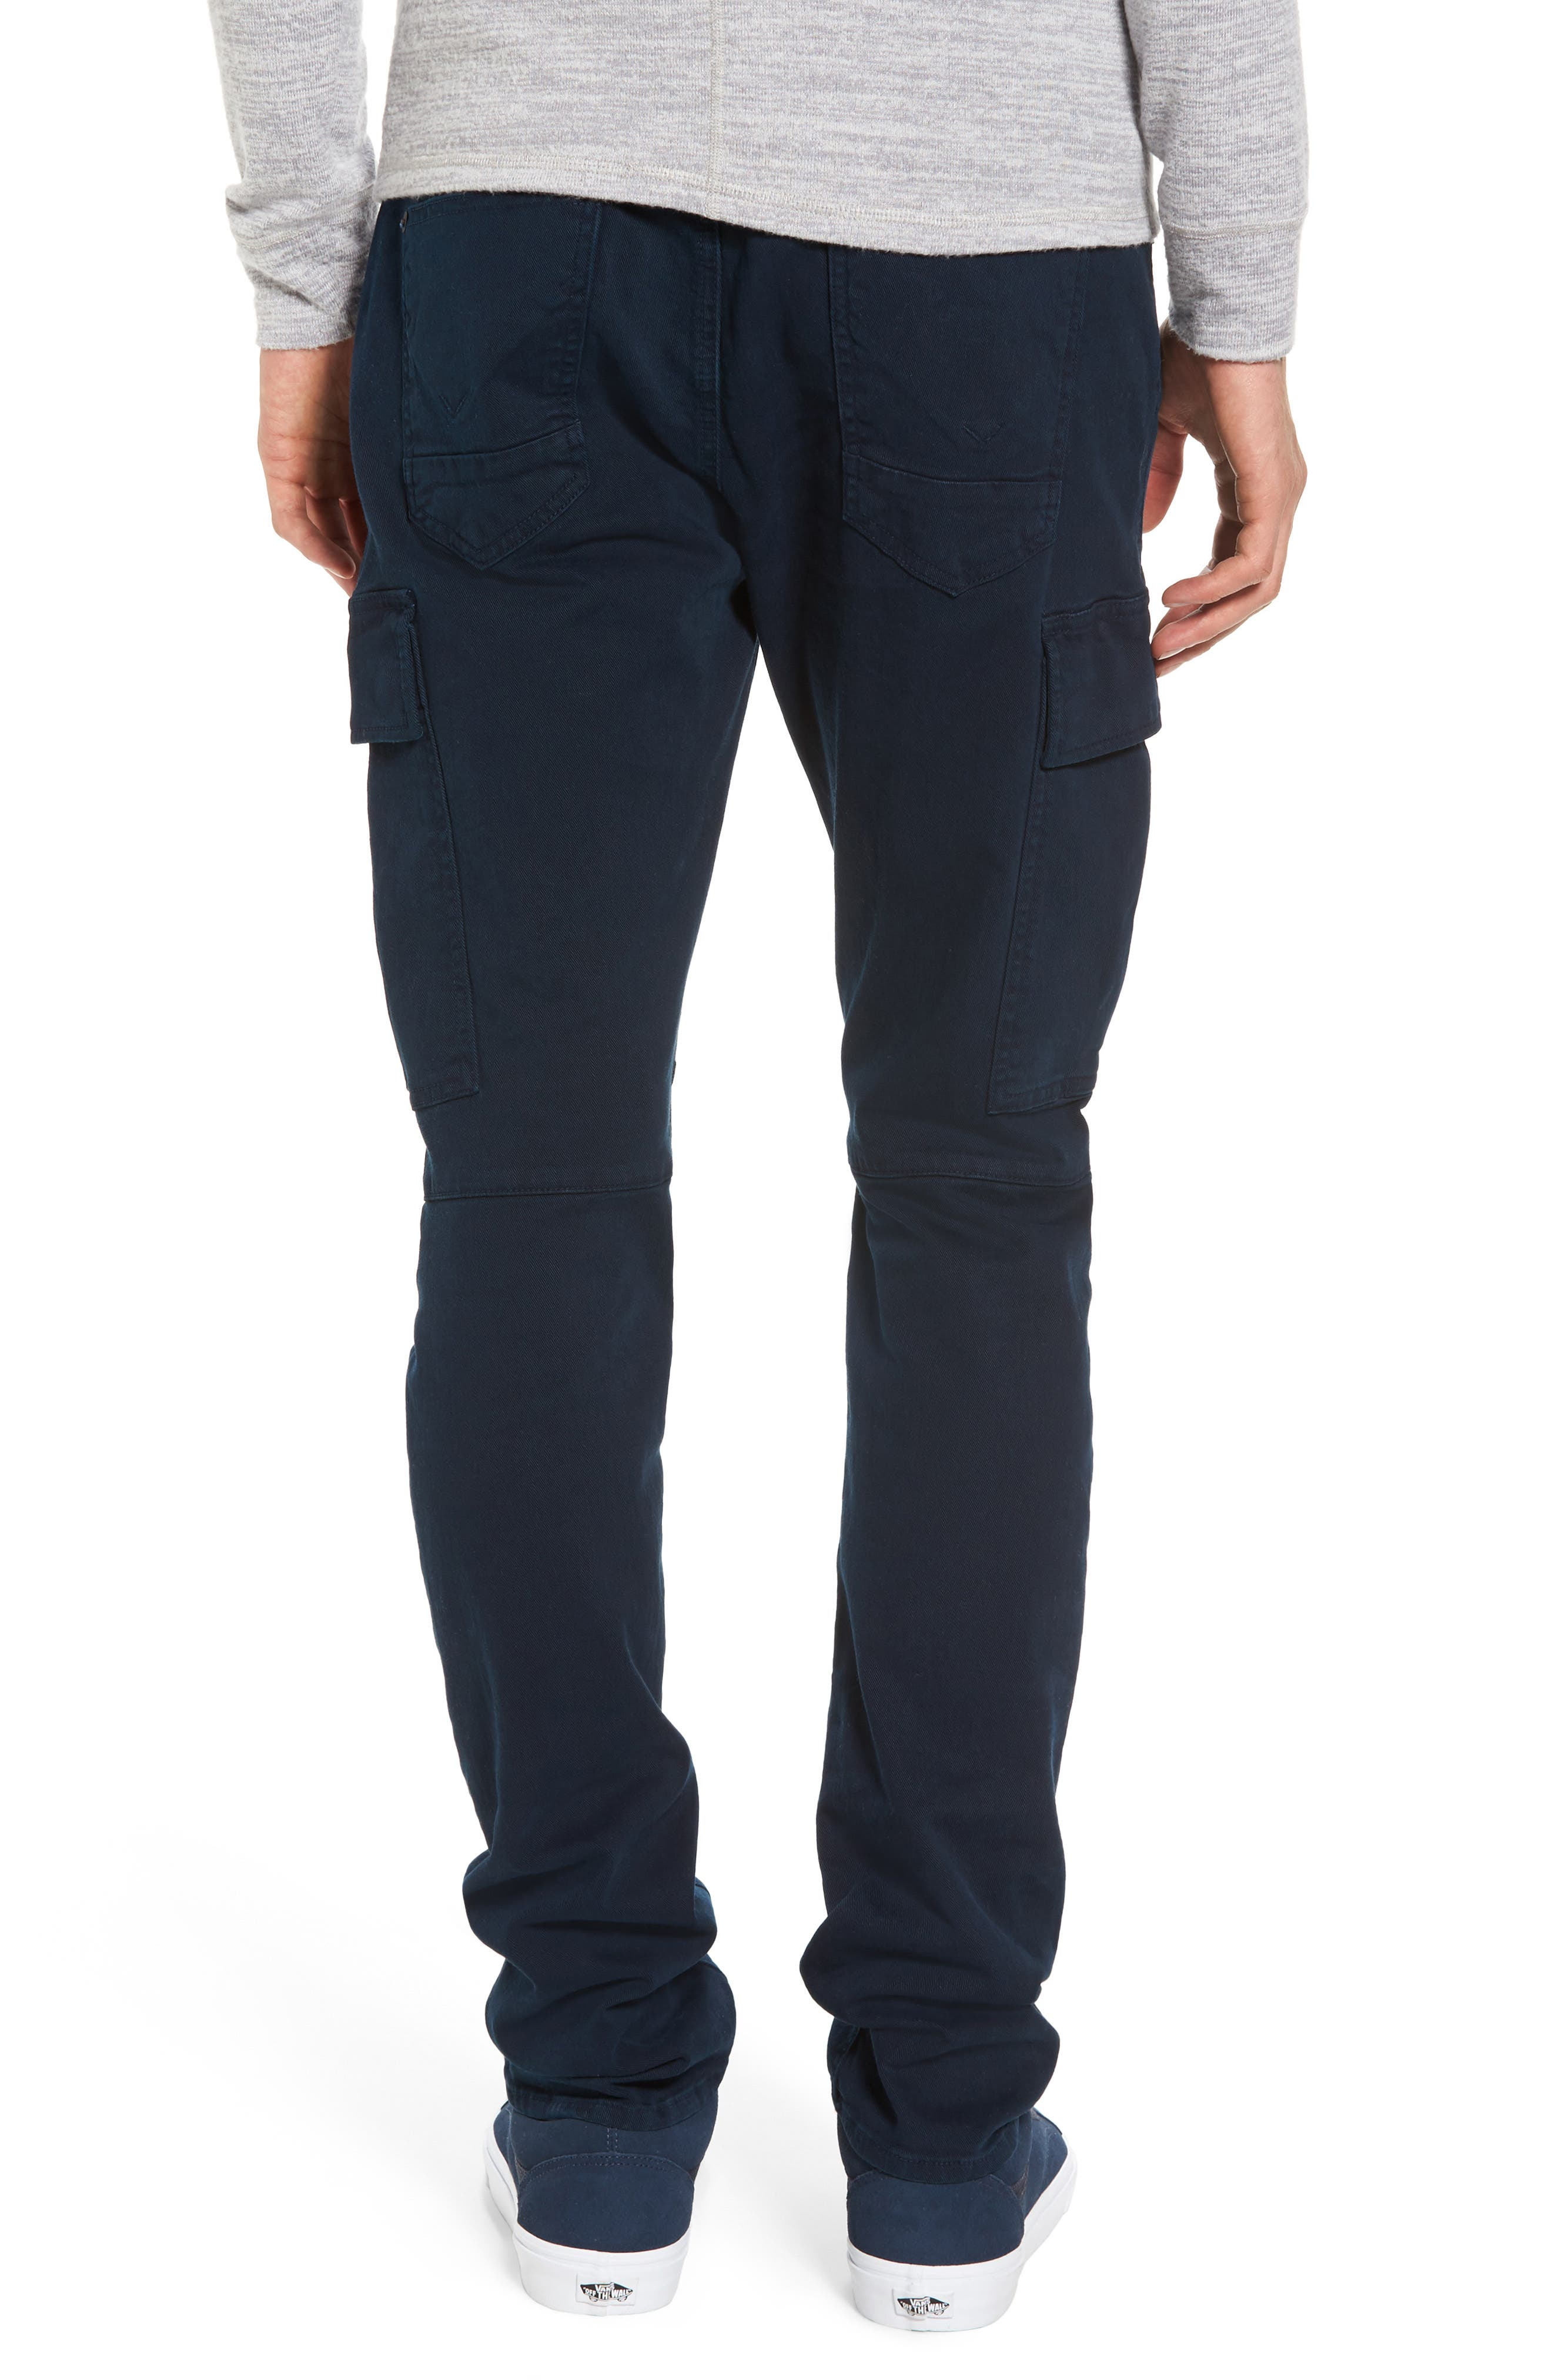 Greyson Cargo Biker Skinny Fit Jeans,                             Alternate thumbnail 2, color,